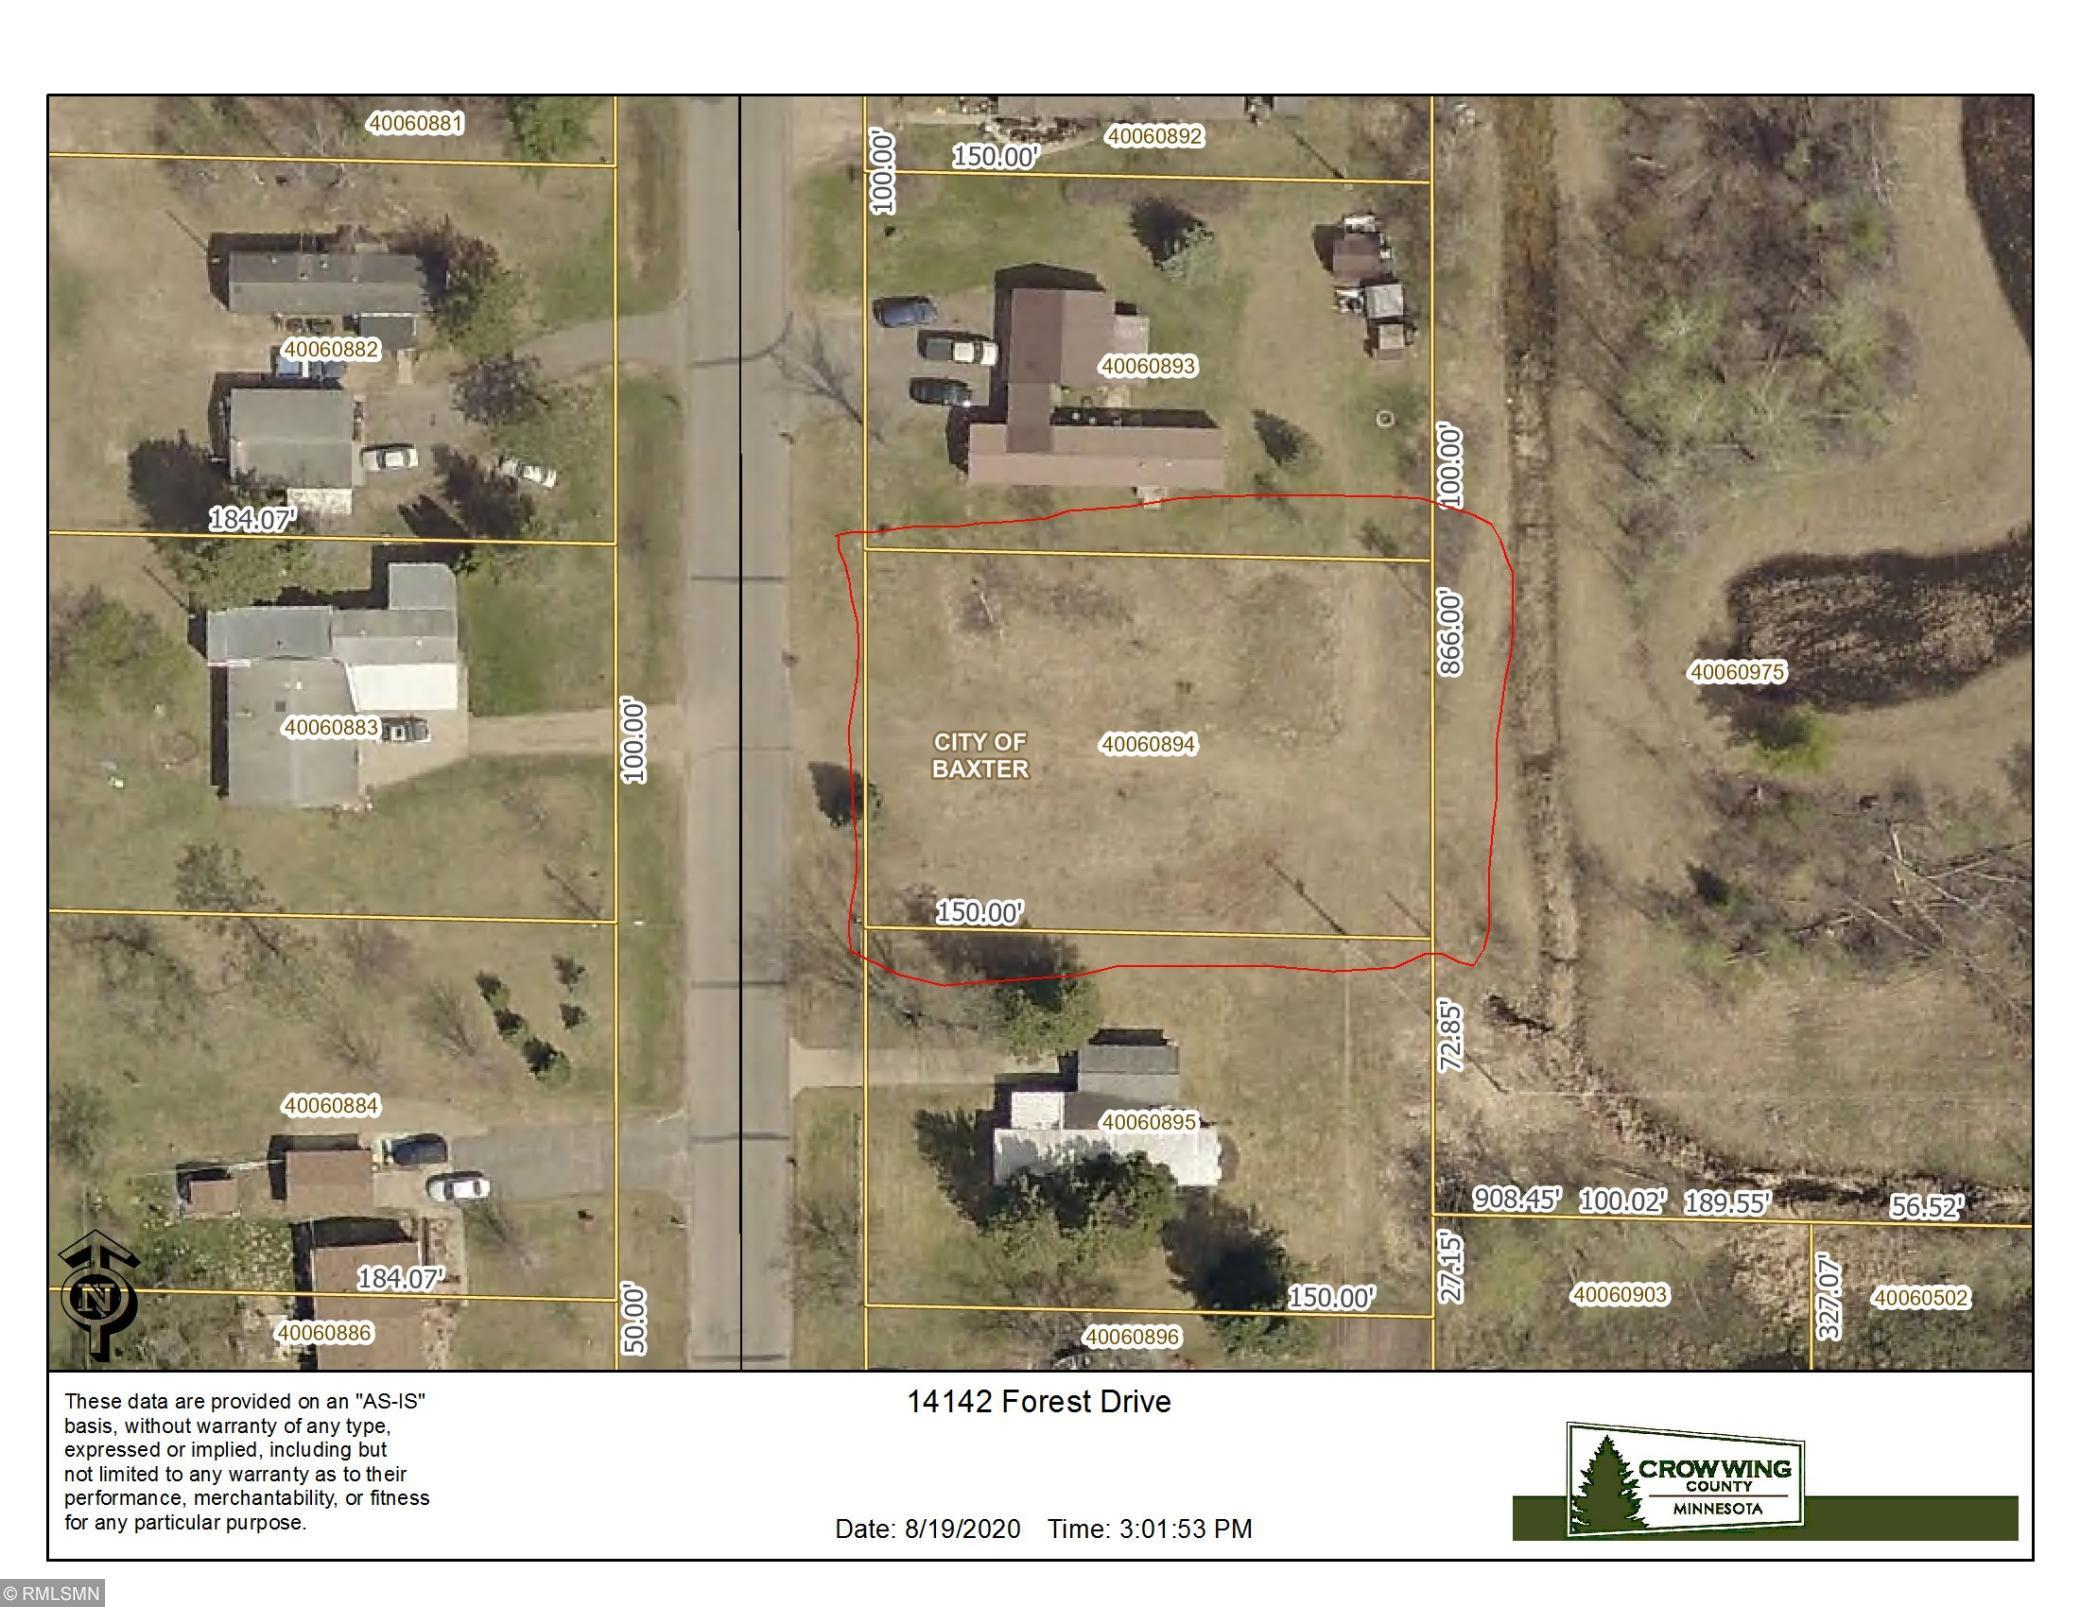 primary photo for 14142 Forest Drive, Baxter, MN 56425, US